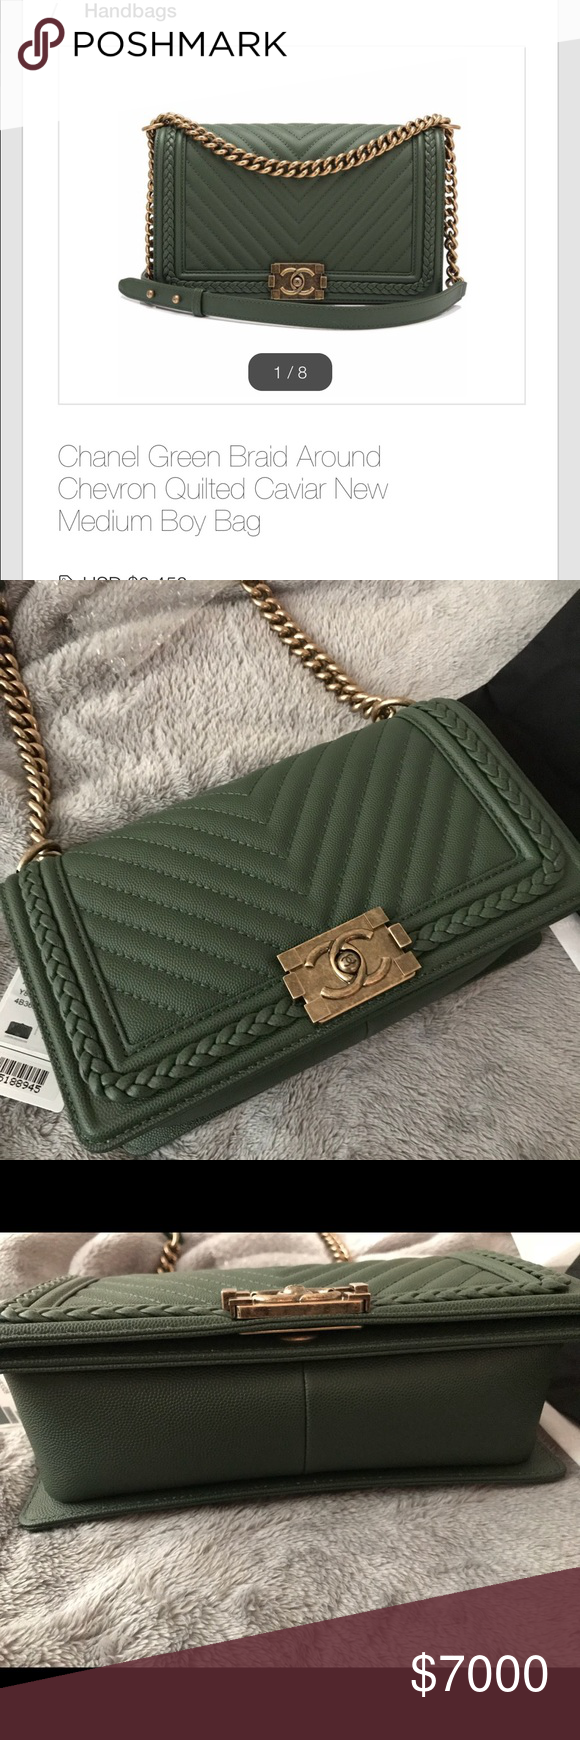 33bcf2d8095a Chanel boy bag chevron chanel boy Chanel bag come with box dust bag and  card. Limited edition nag hard to get this color and the combination of the  braided ...